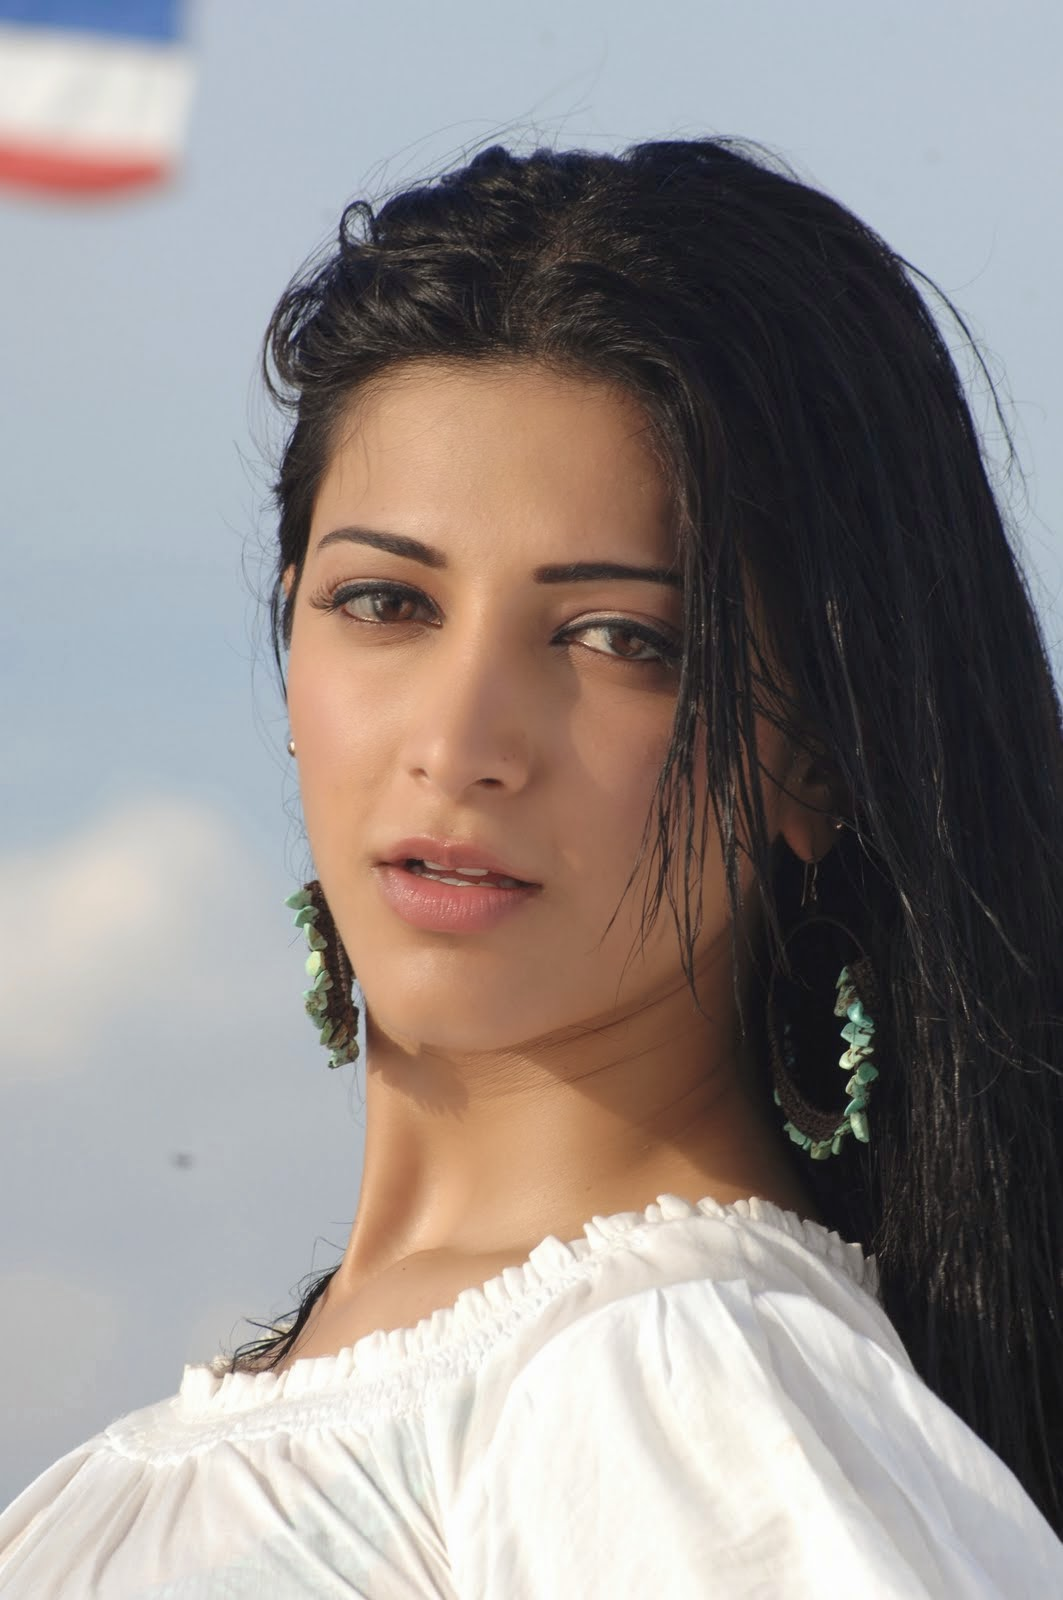 High Quality Bollywood Celebrity Pictures Shruti Hassan -5476